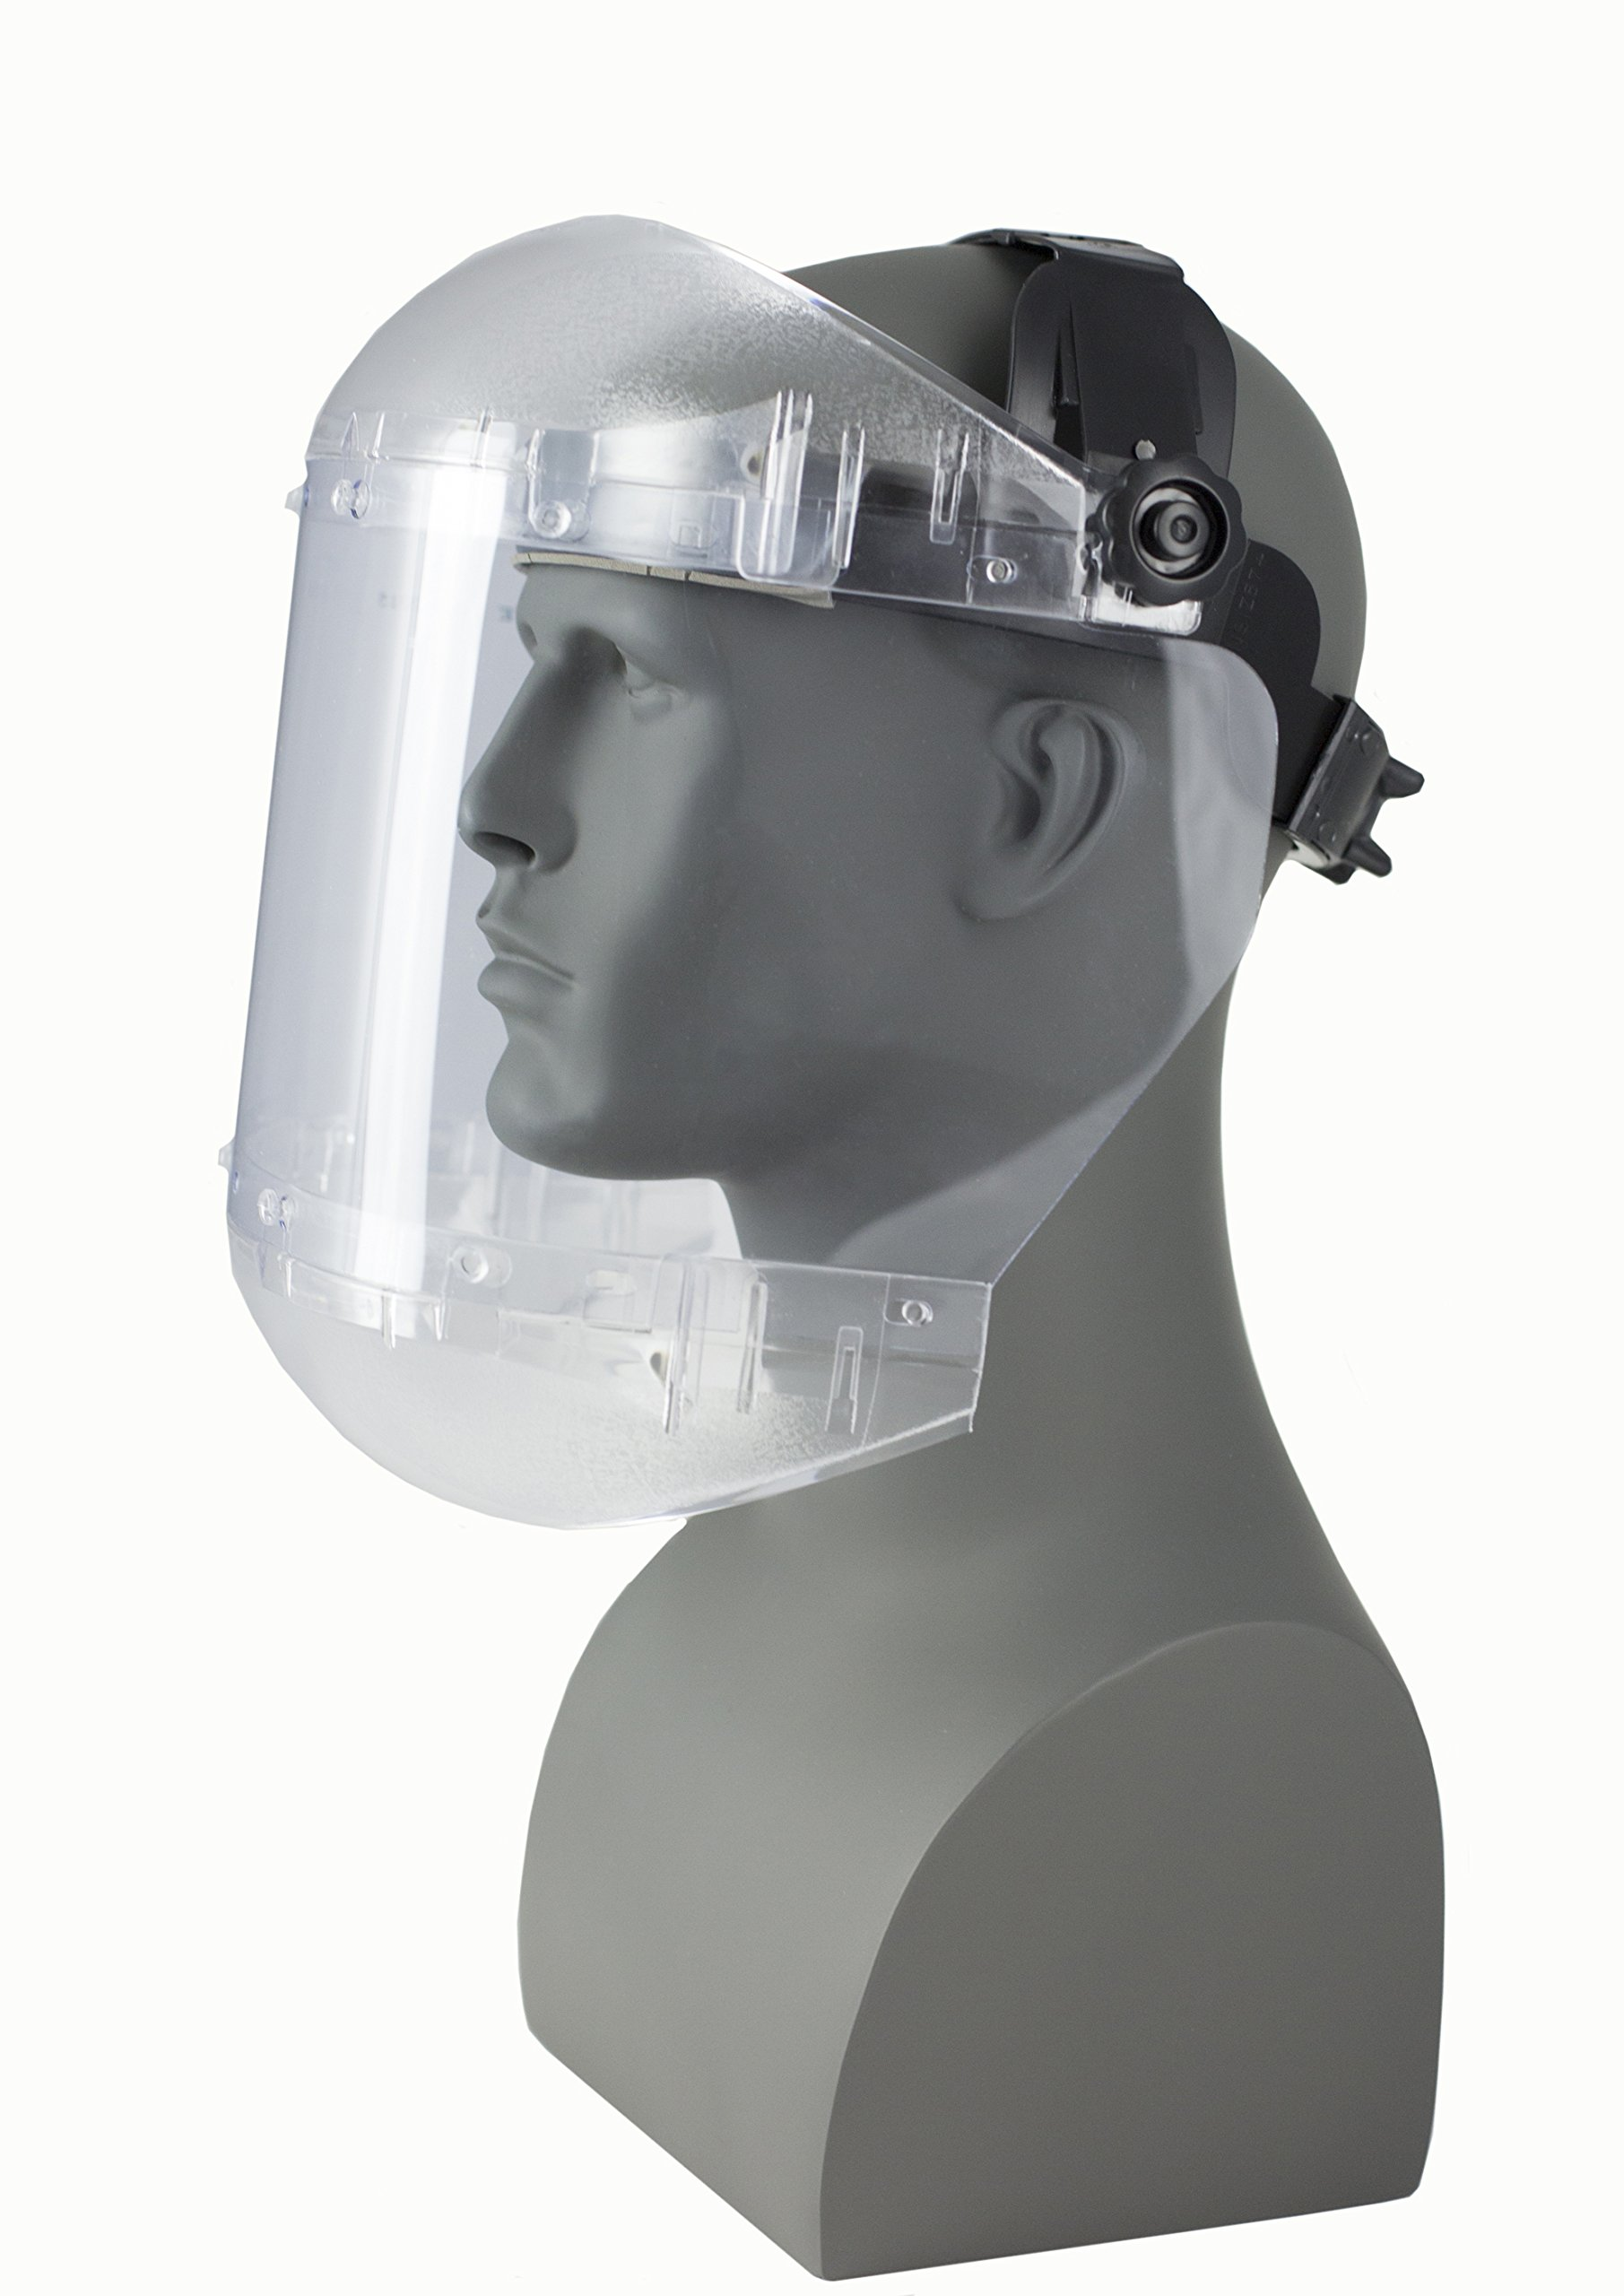 Sellstrom S38440 Max Light Series Face Shield, Anti-Fog Acetate Window with Ratchet Headgear, Universal, Clear, Made in USA